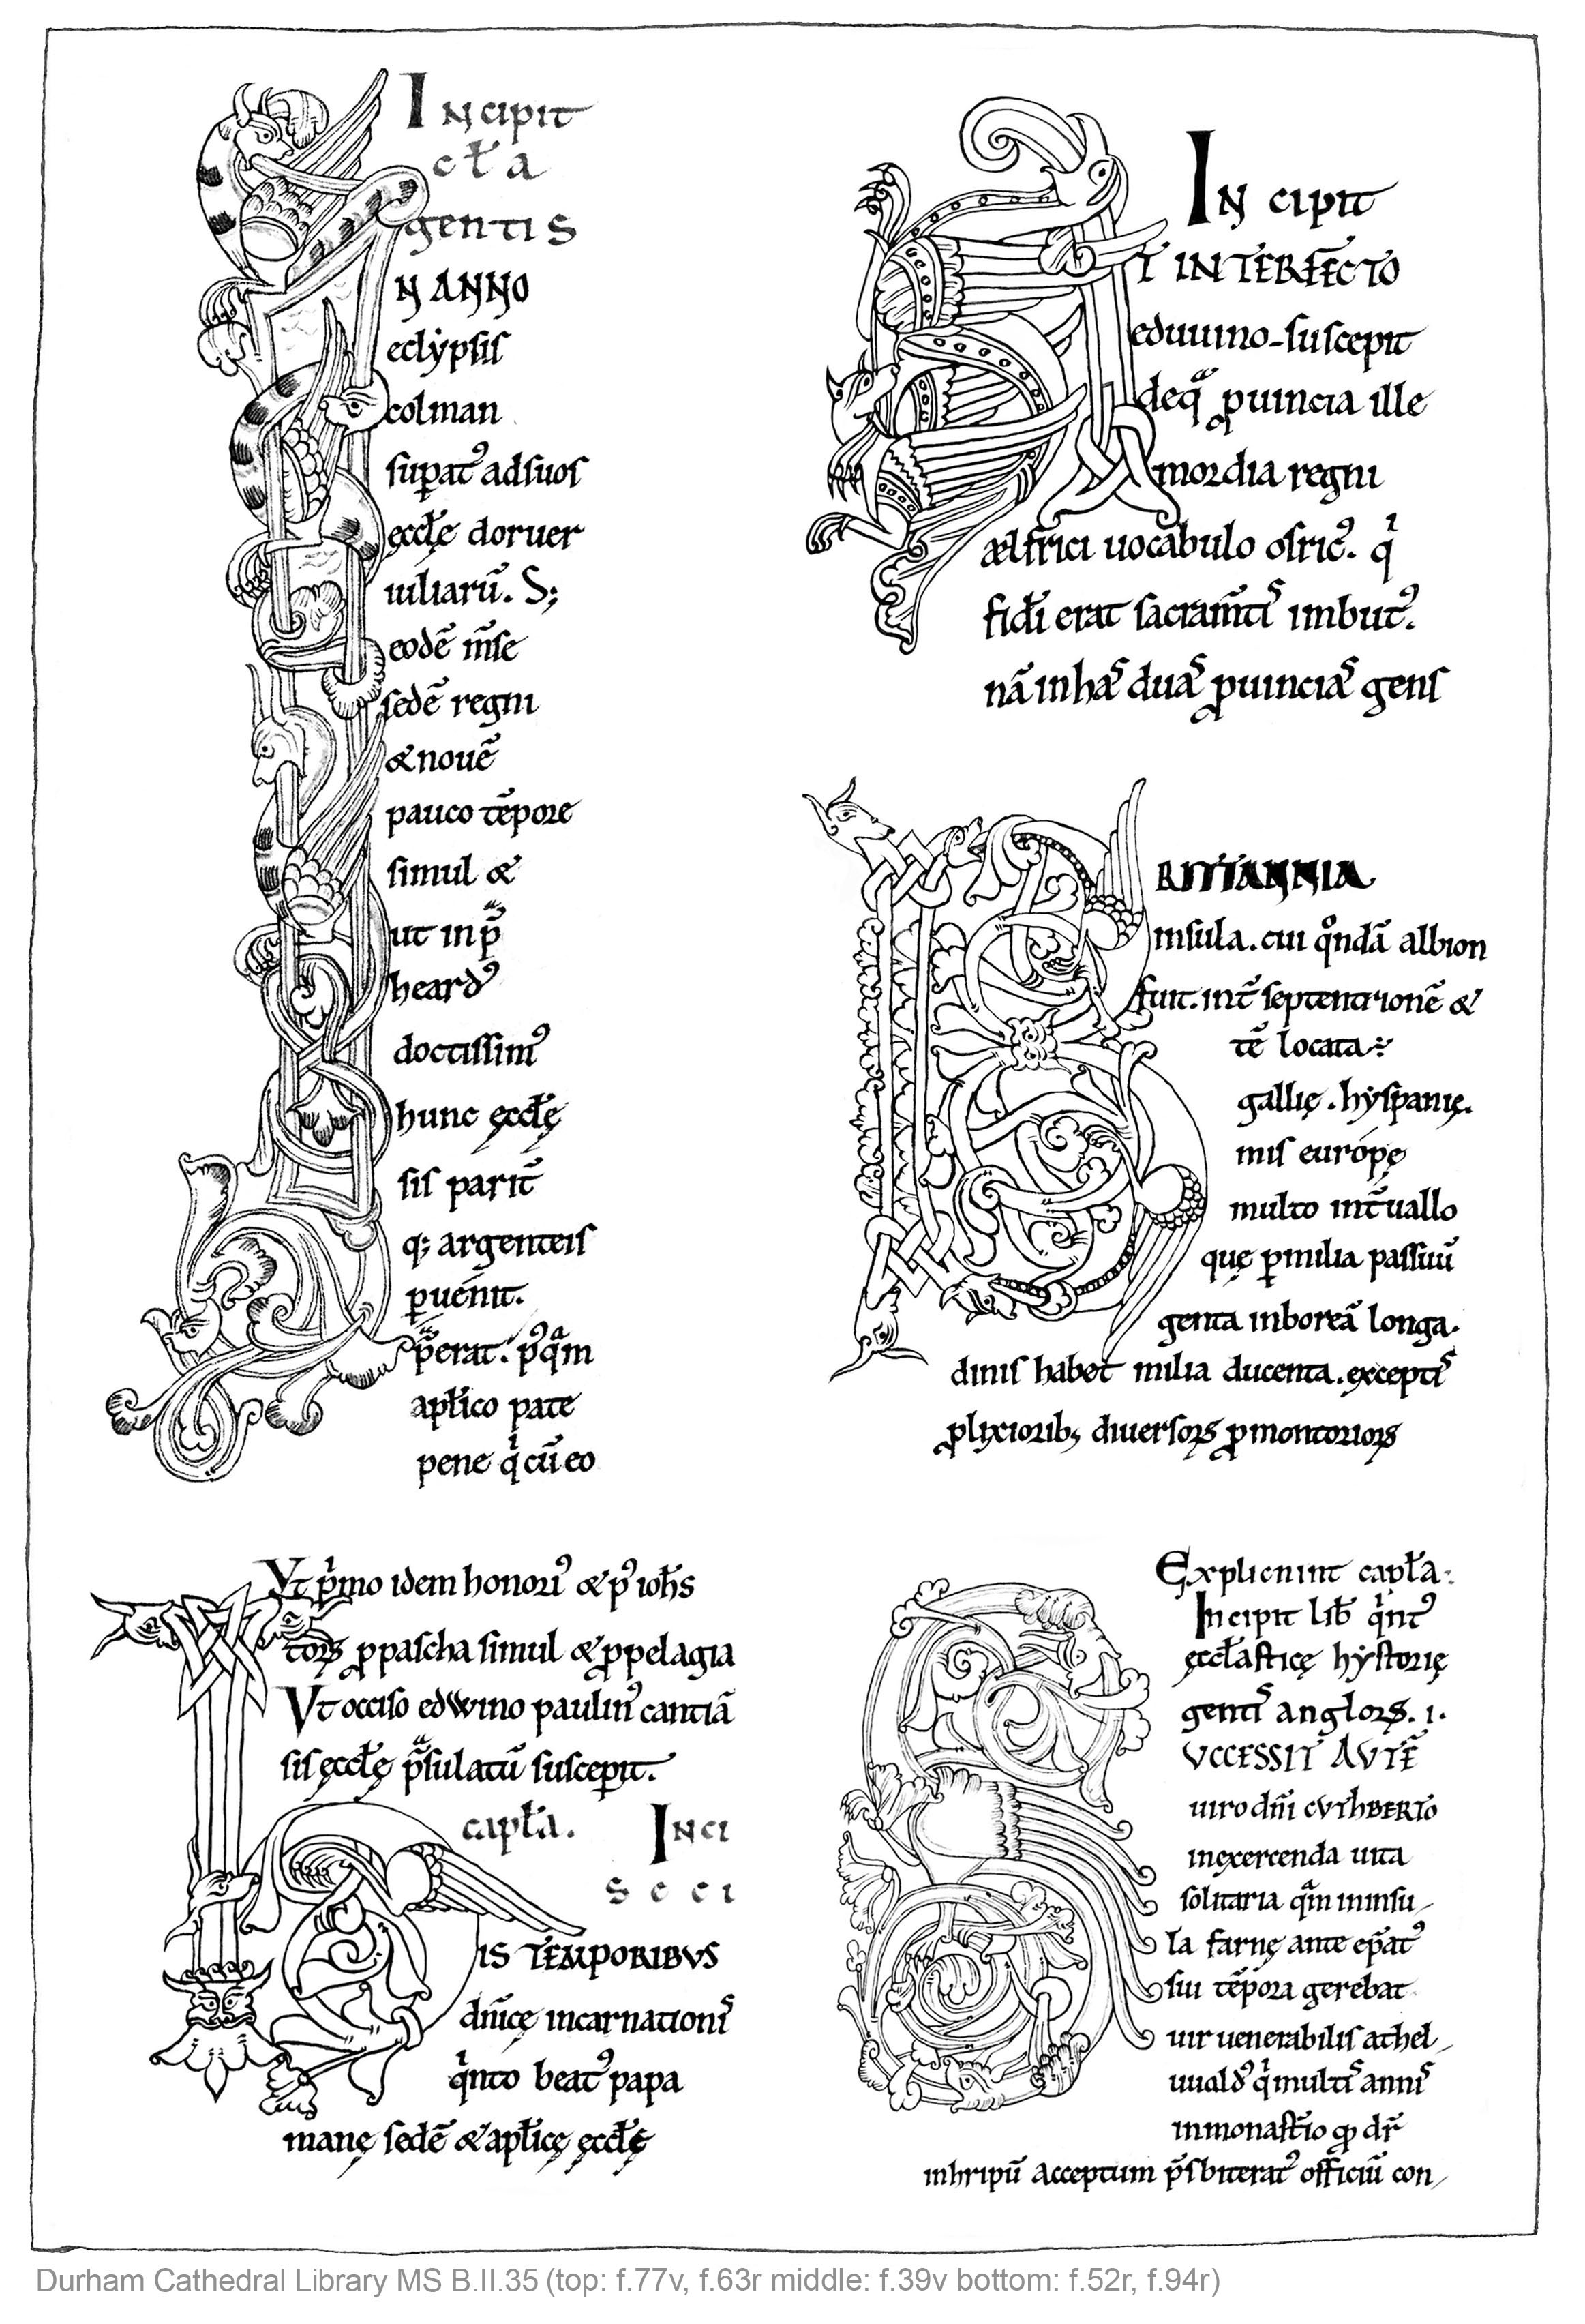 Durham Cathedral Library MS. B.II.35, five letters, A4